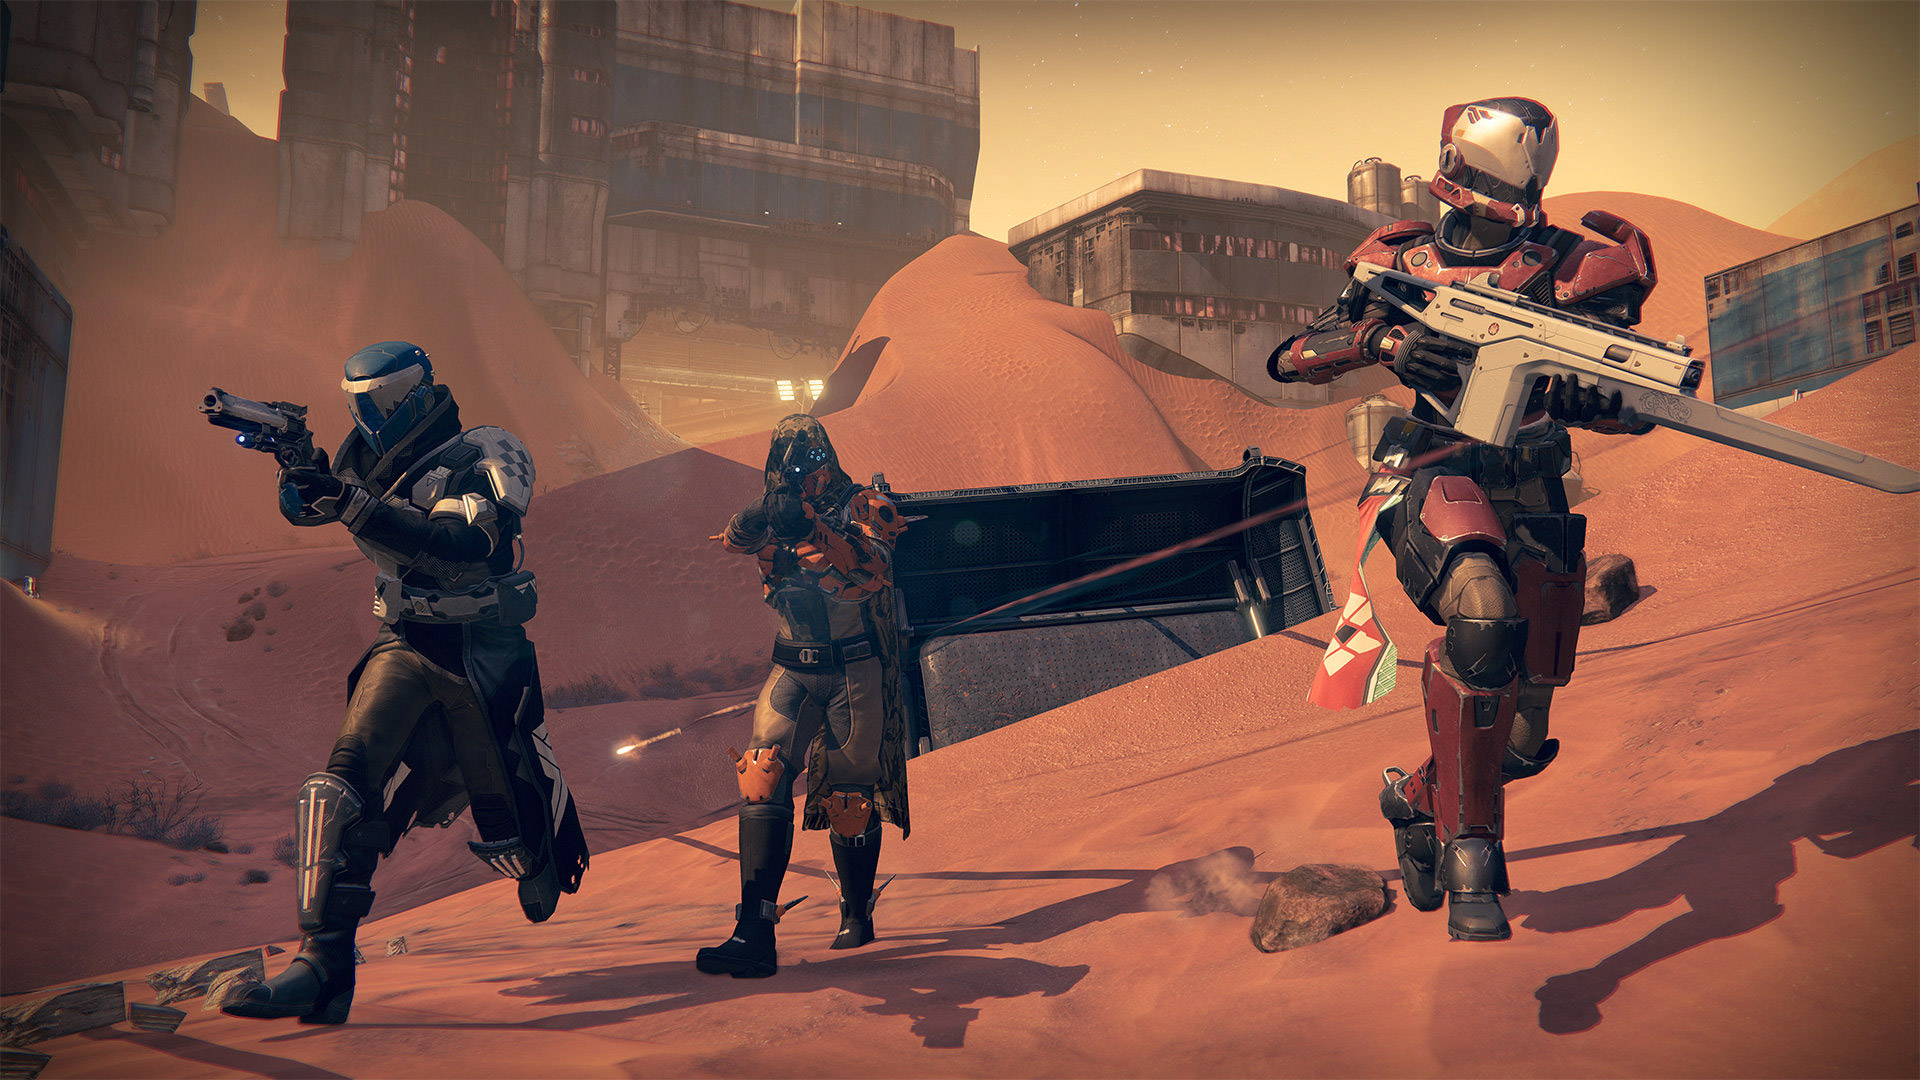 Destiny's endgame is one of the best multiplayer shooters of the year